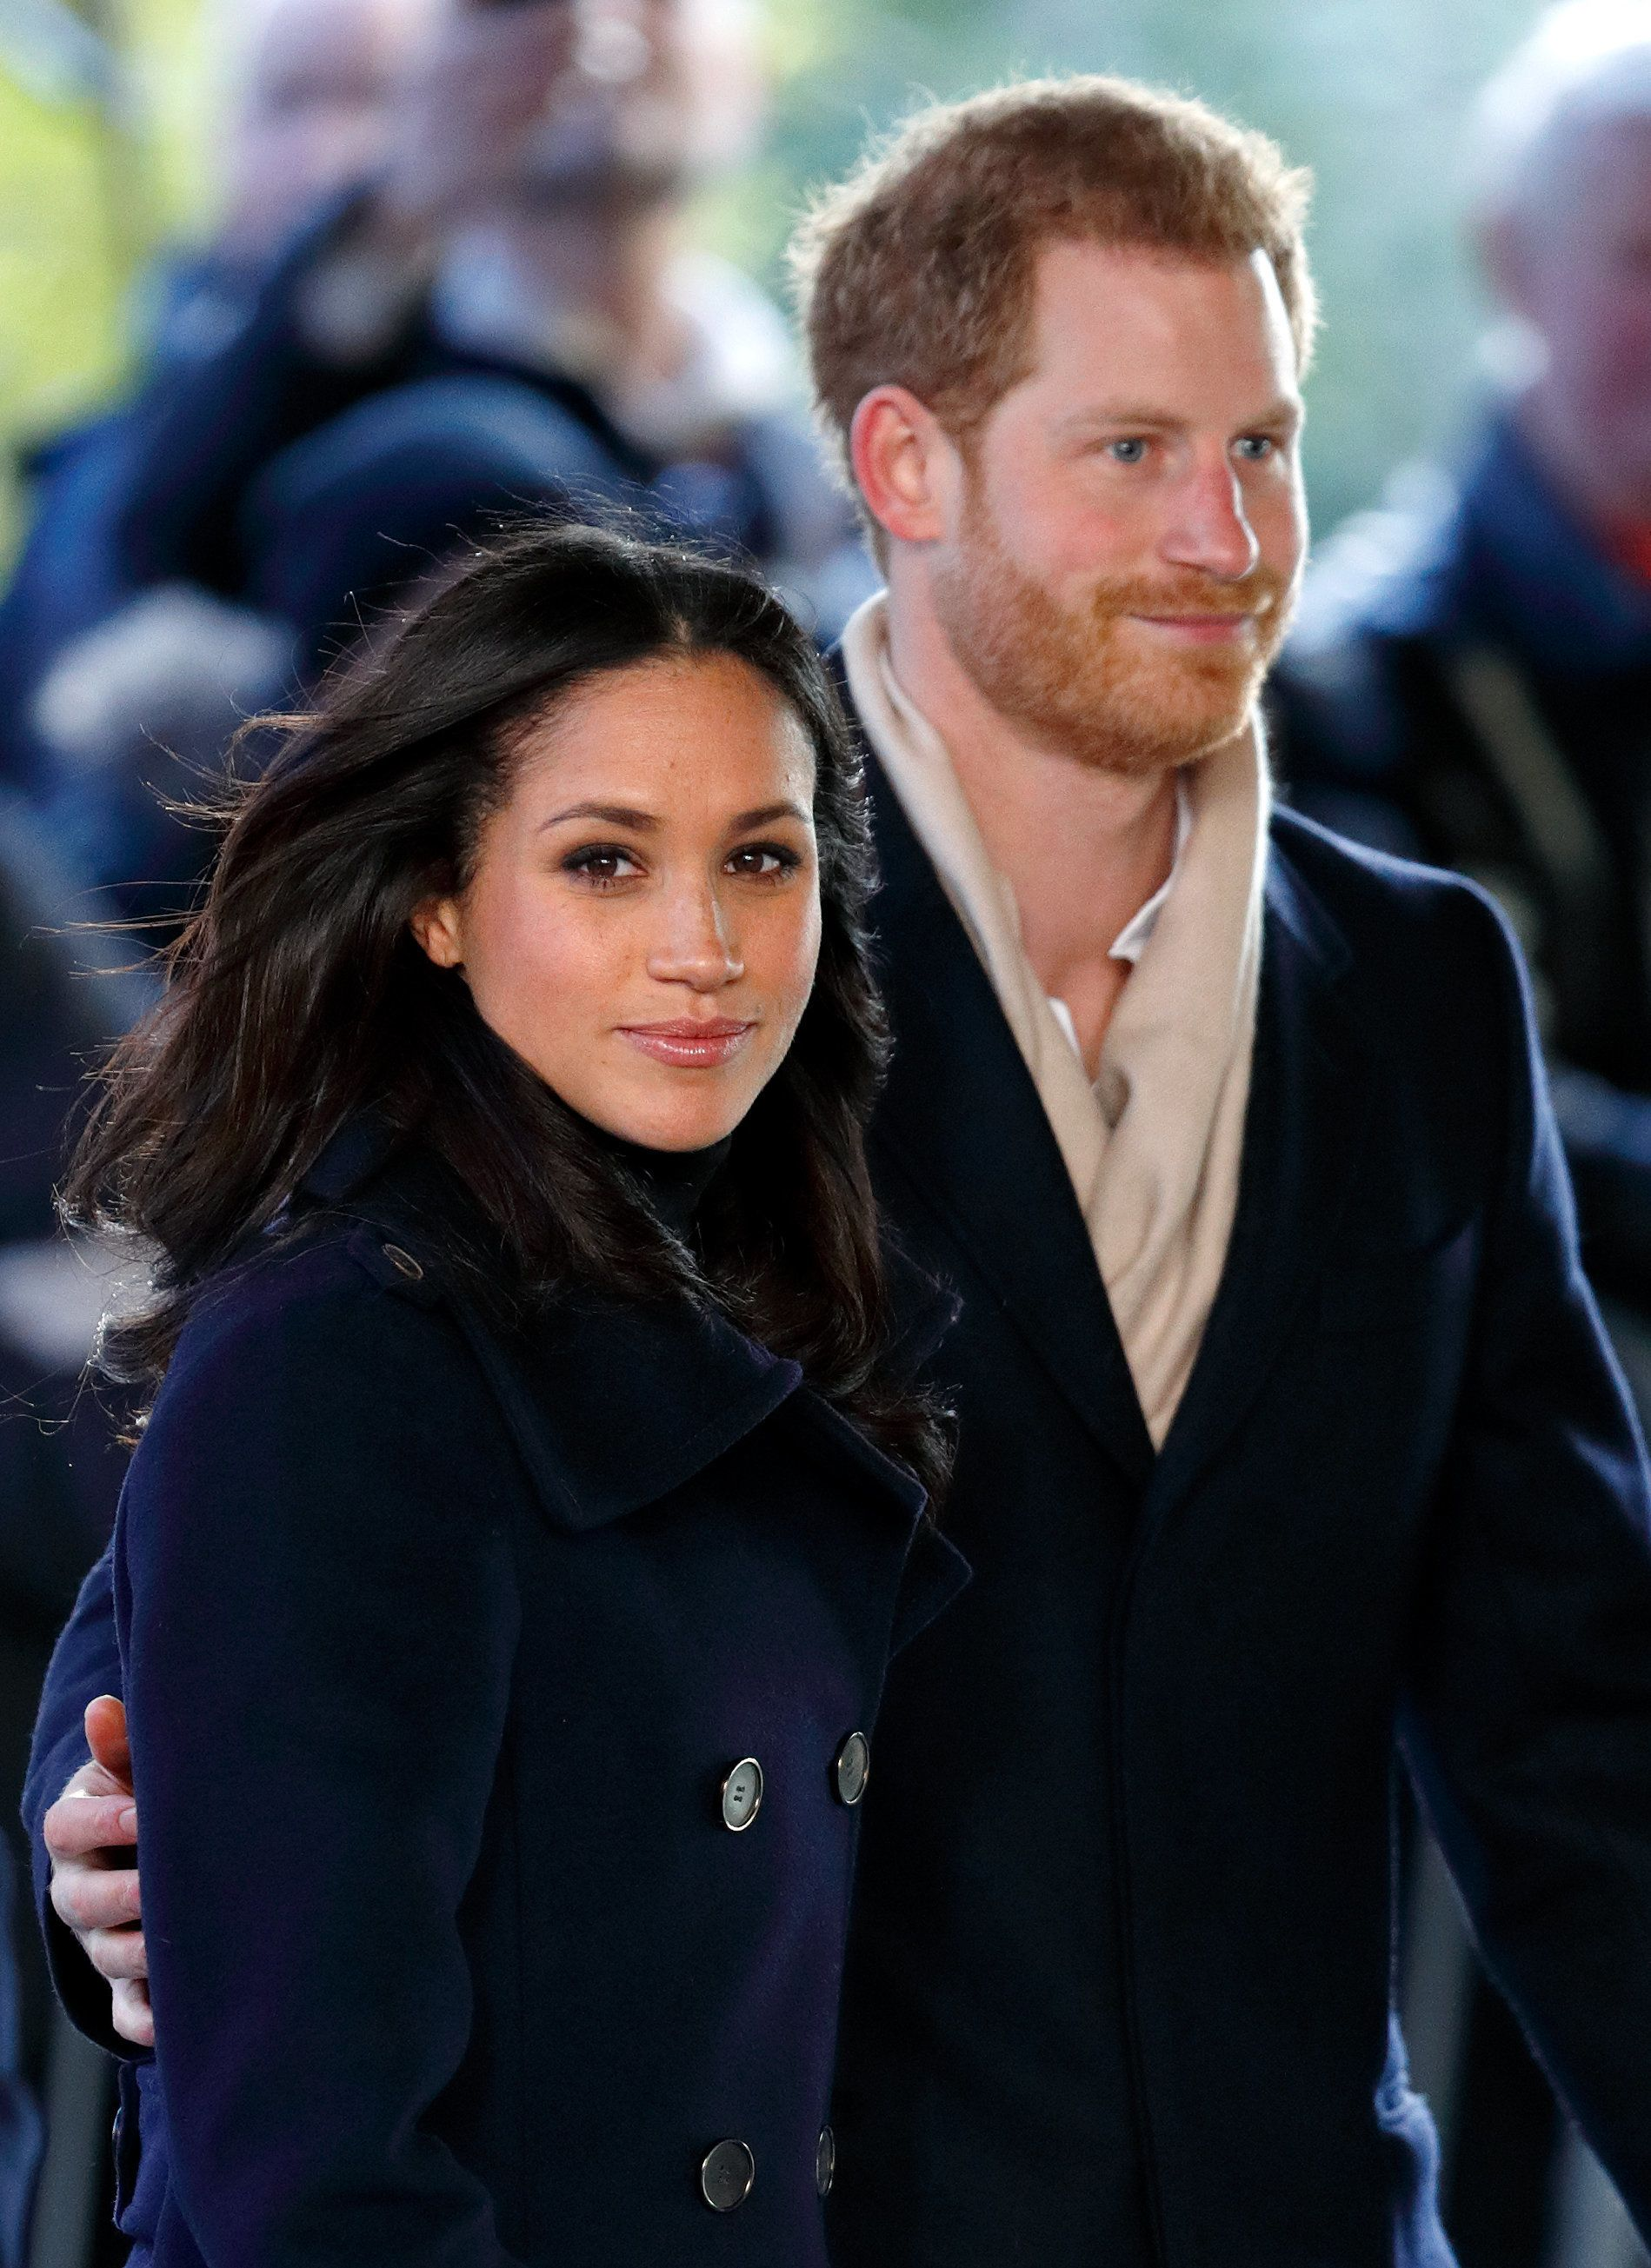 NOTTINGHAM, UNITED KINGDOM - DECEMBER 01: (EMBARGOED FOR PUBLICATION IN UK NEWSPAPERS UNTIL 24 HOURS AFTER CREATE DATE AND TIME) Meghan Markle and Prince Harry attend a Terrence Higgins Trust World AIDS Day charity fair at Nottingham Contemporary on December 1, 2017 in Nottingham, England. Prince Harry and Meghan Markle announced their engagement on Monday 27th November 2017 and will marry at St George's Chapel, Windsor in May 2018. (Photo by Max Mumby/Indigo/Getty Images)